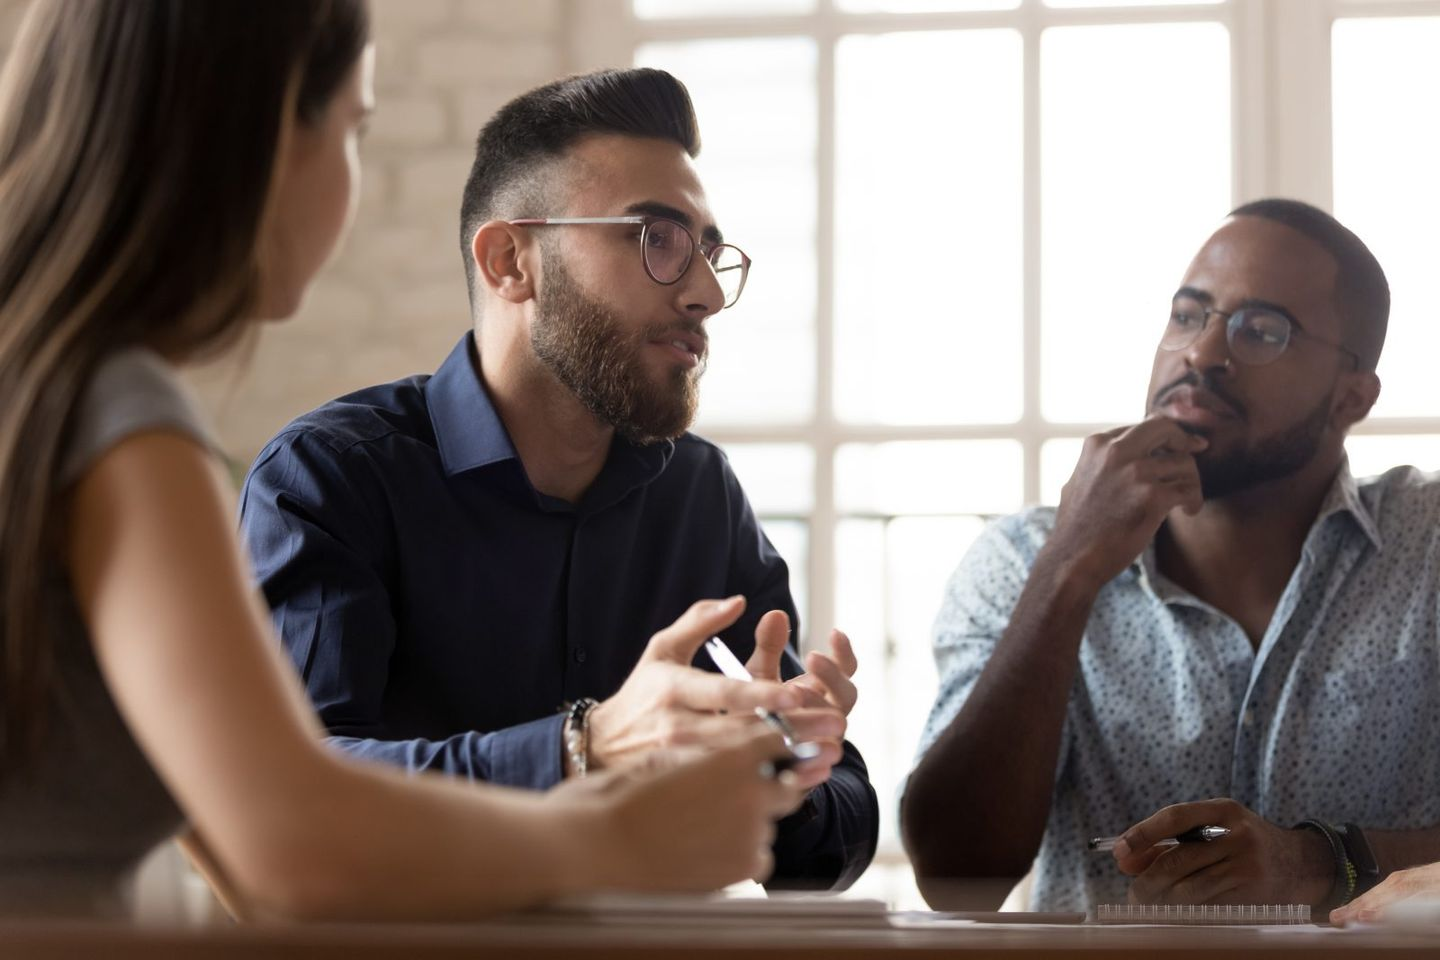 Multiethnic colleagues talk discussing business ideas at meeting